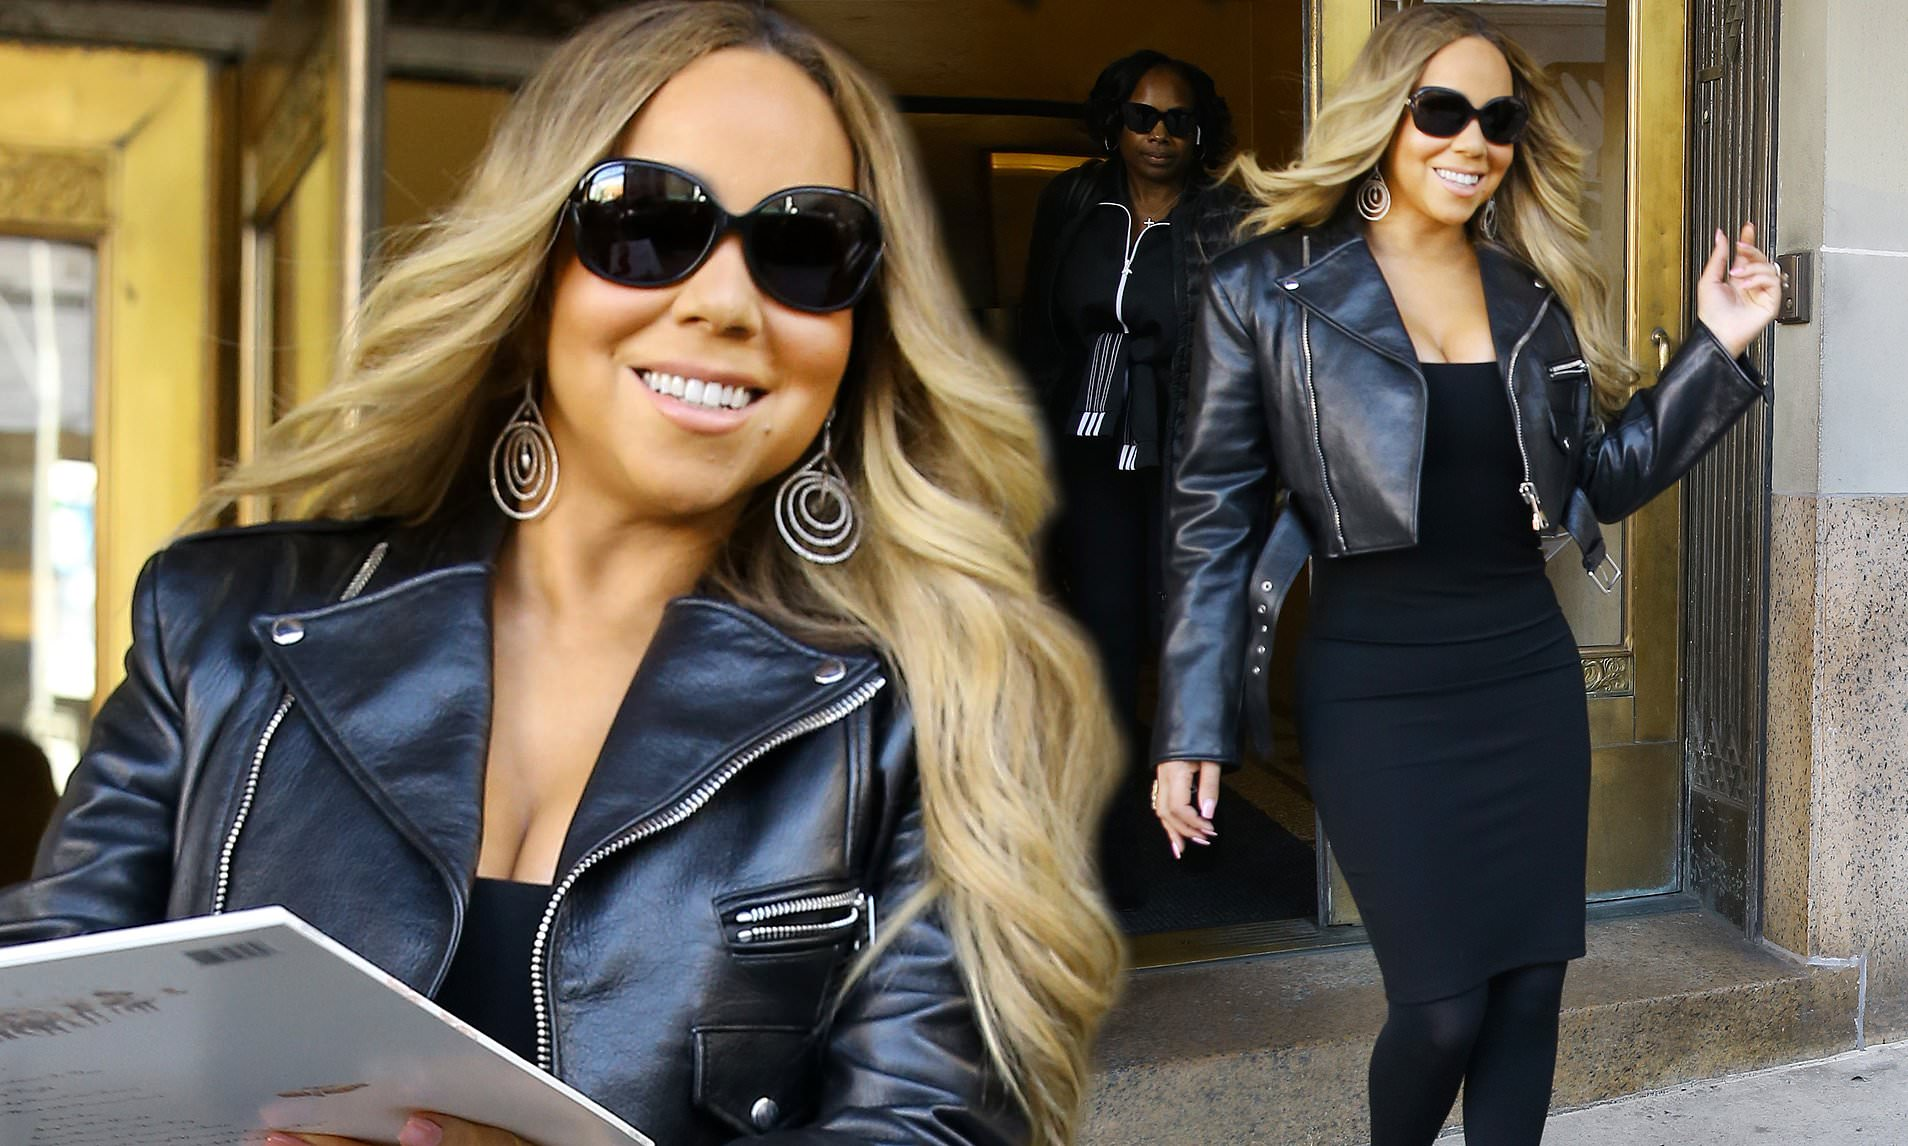 Mariah Carey Continues Radio Promo Ahead Of 'Caution' Album Release